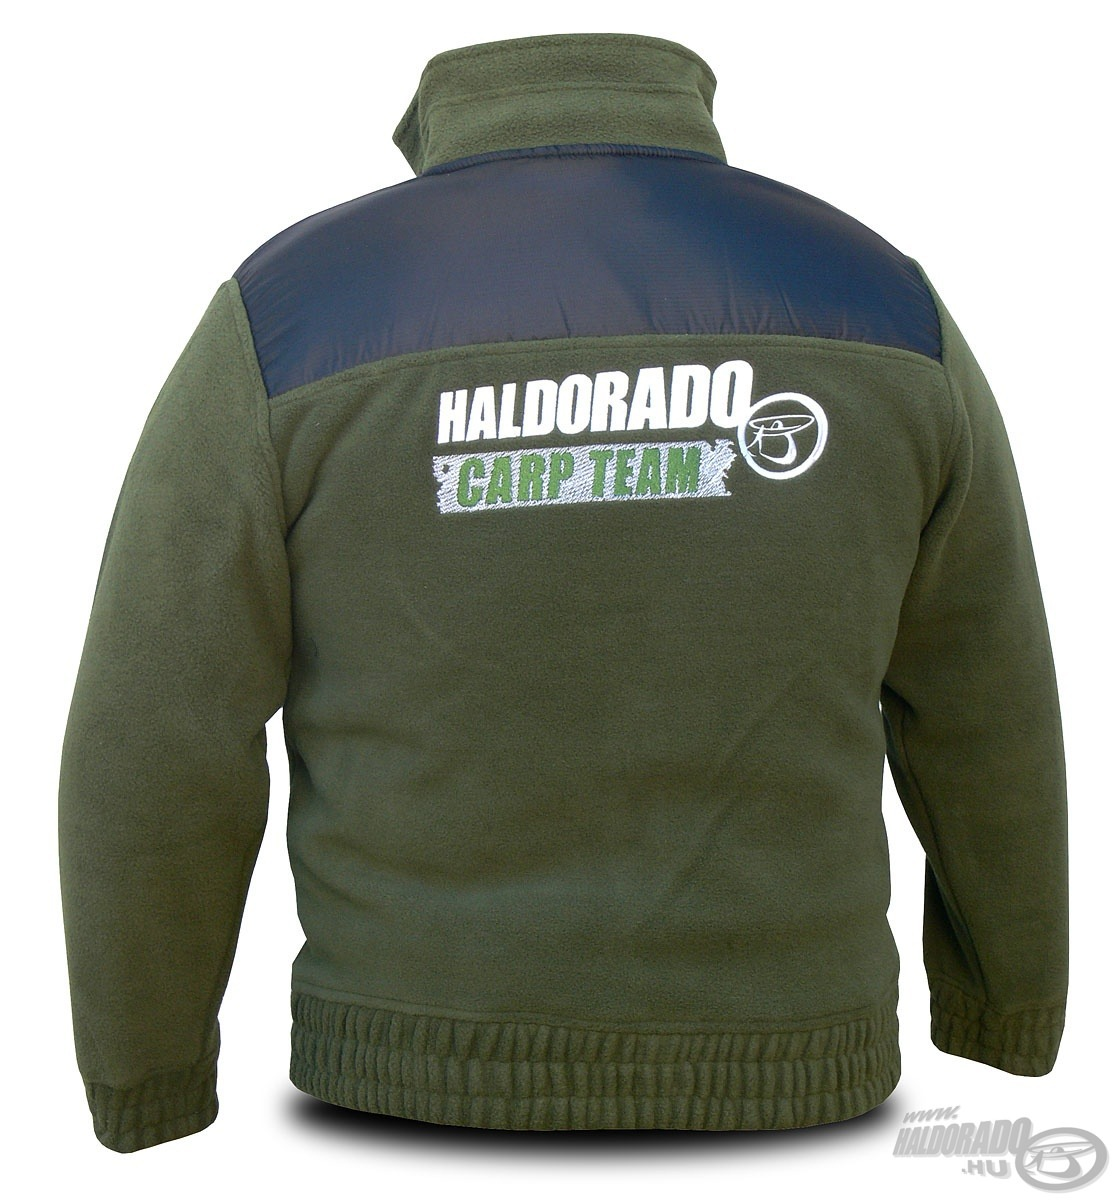 HALDOR�D�, |, Carp, Team, pol�r, kab�t 9990Ft